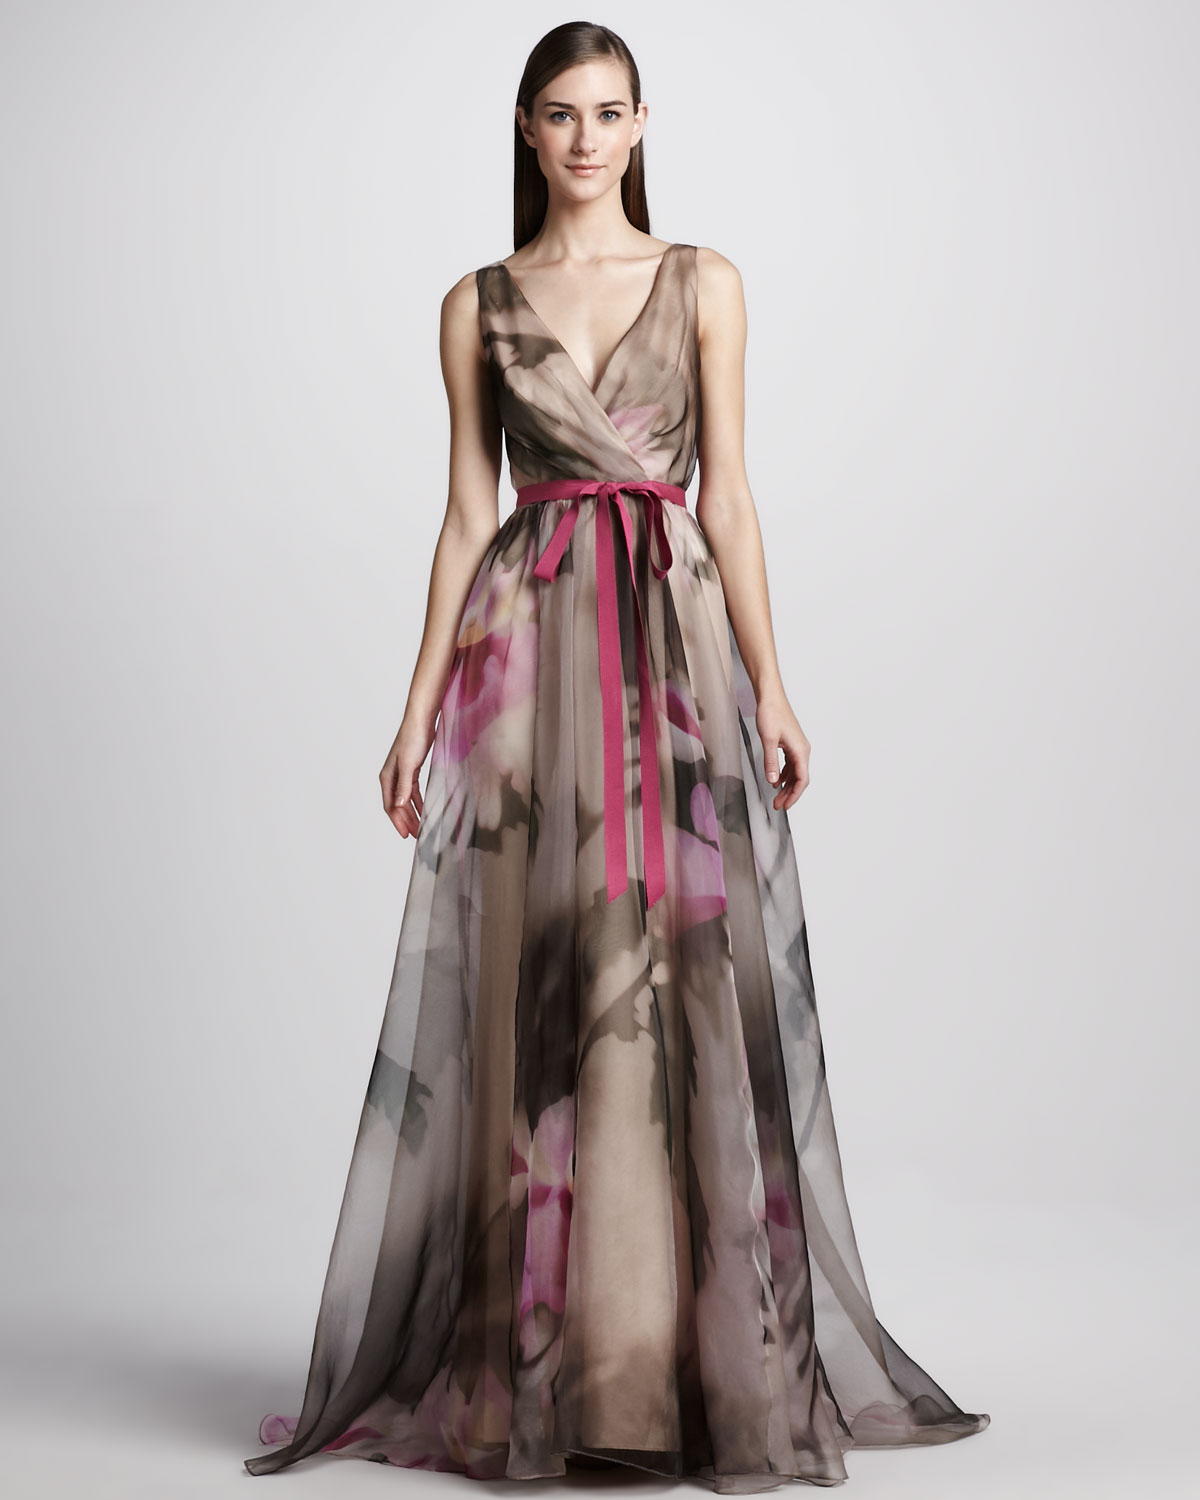 Lyst - Badgley Mischka Floral print Organza Ball Gown in Gray